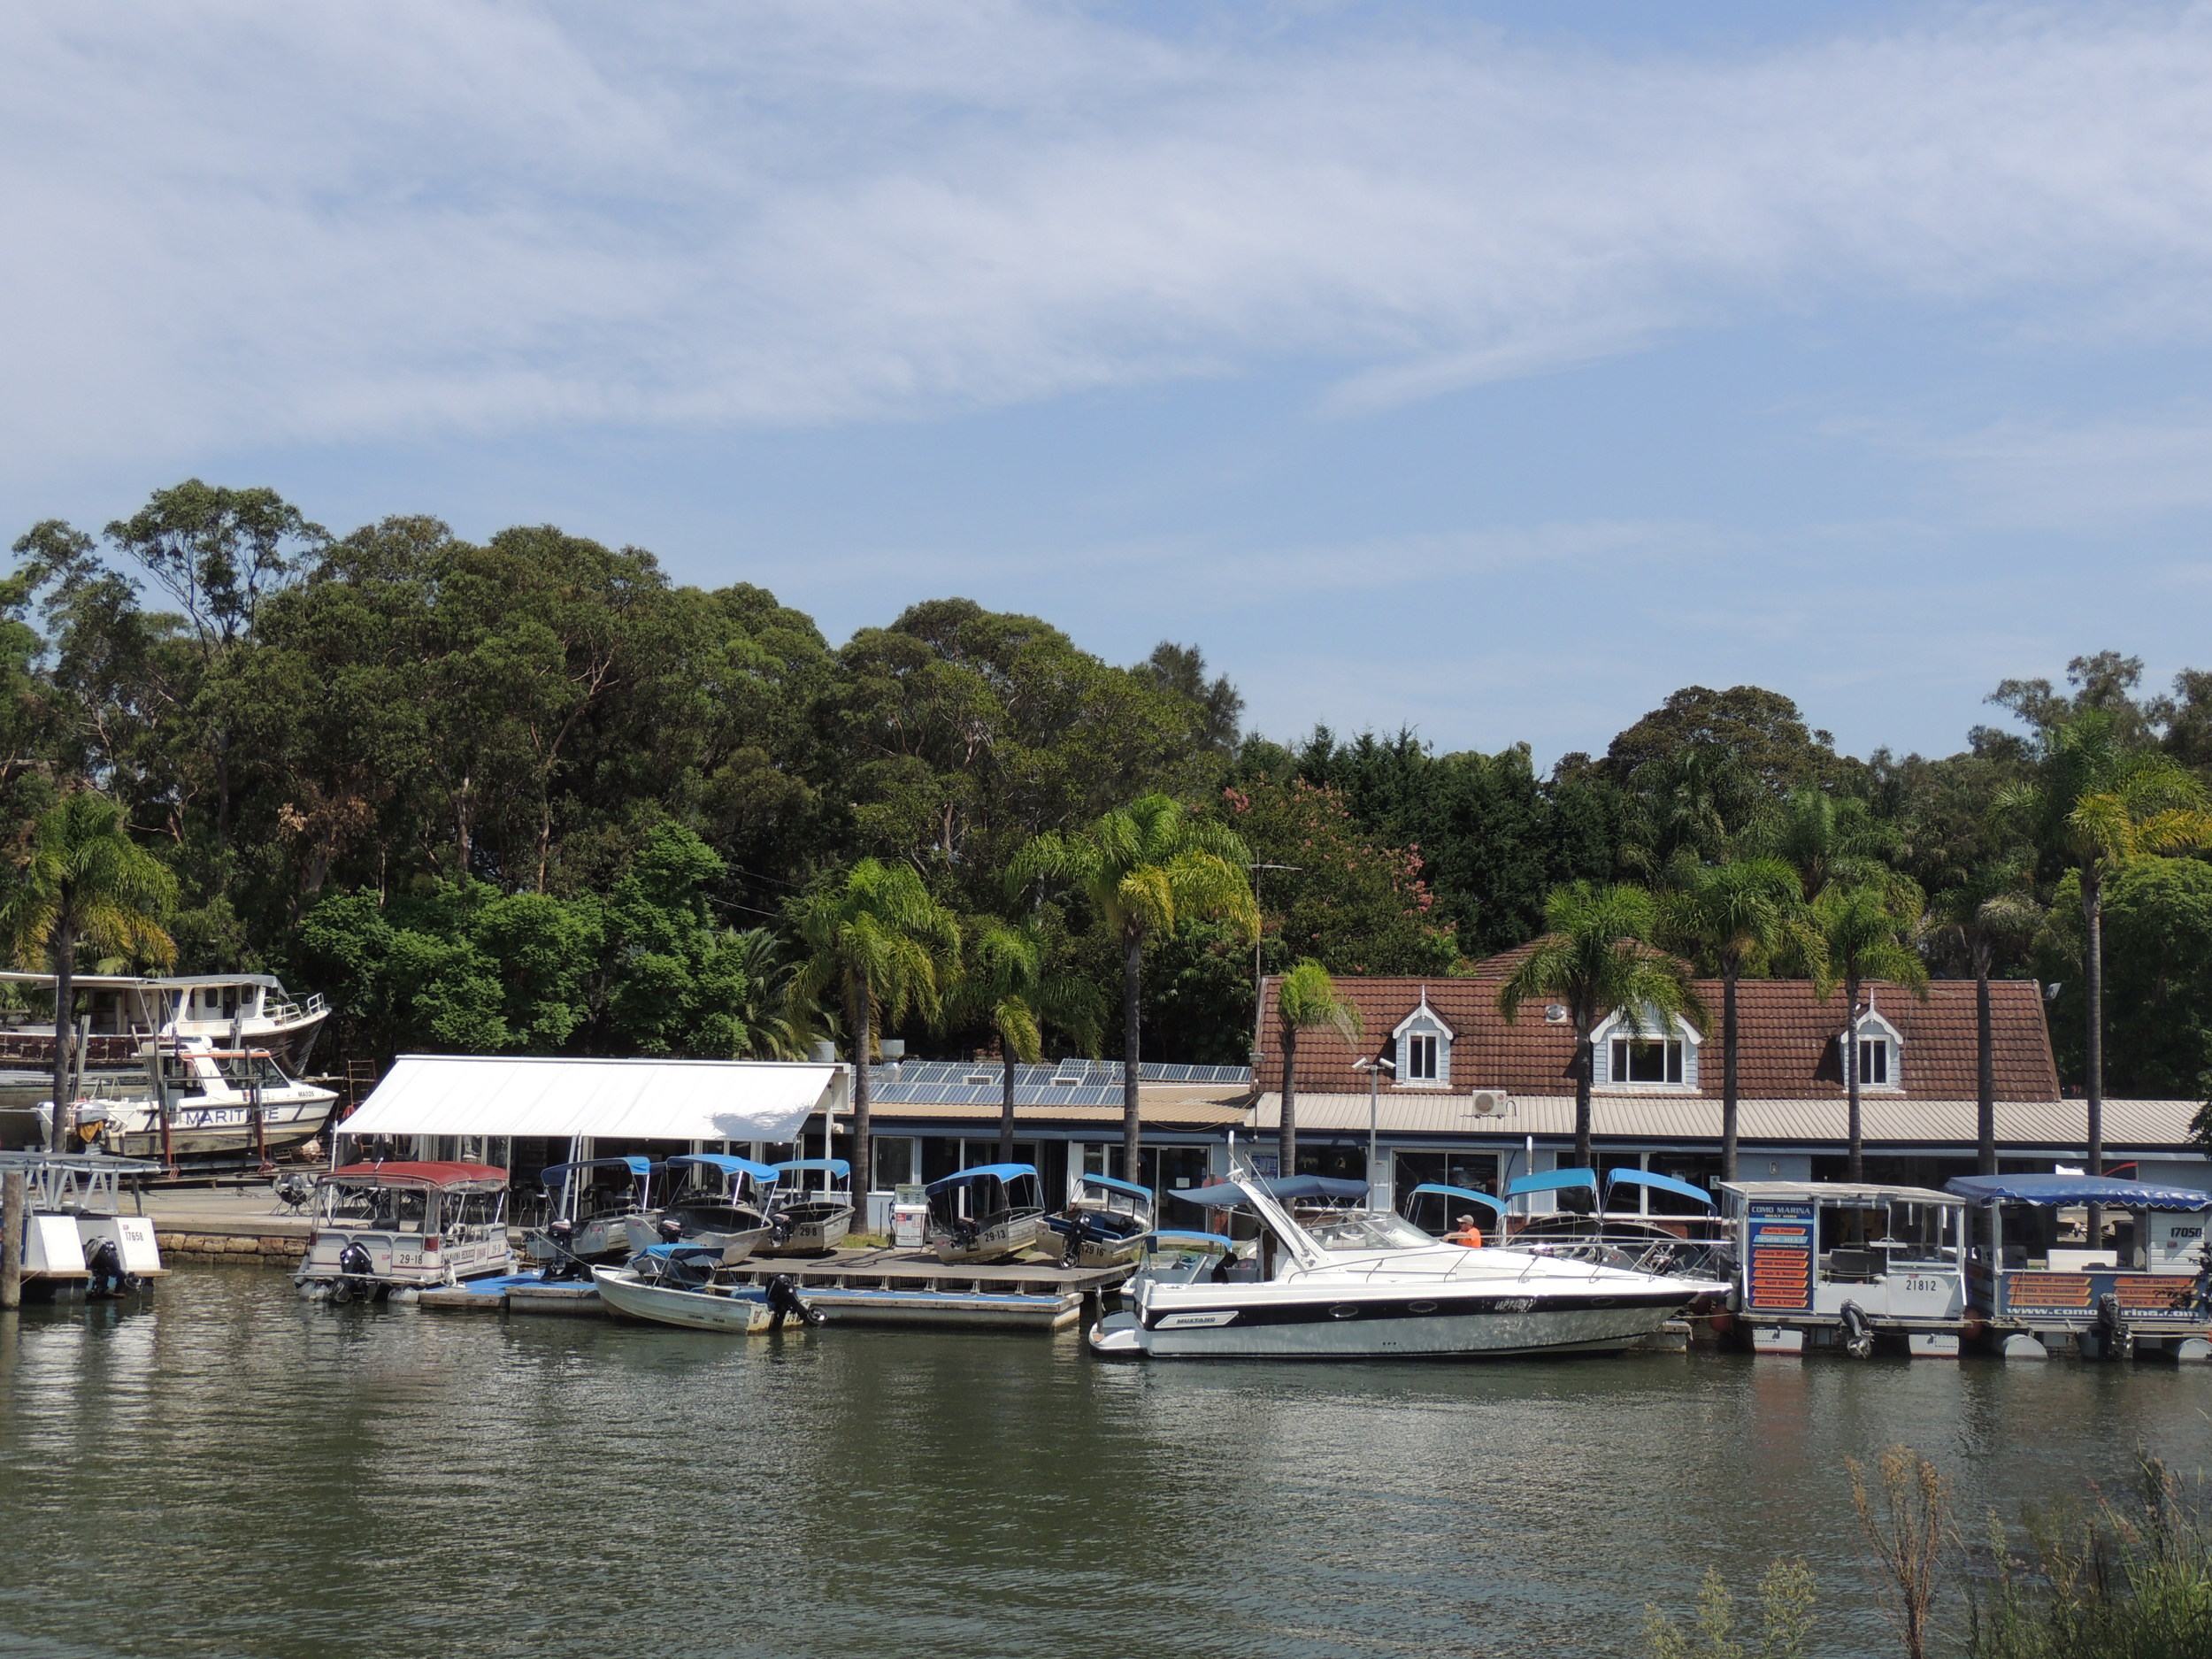 Photo of Como Marina Boat Hire, Como Waterfront Cafe, Como Marina Slipway